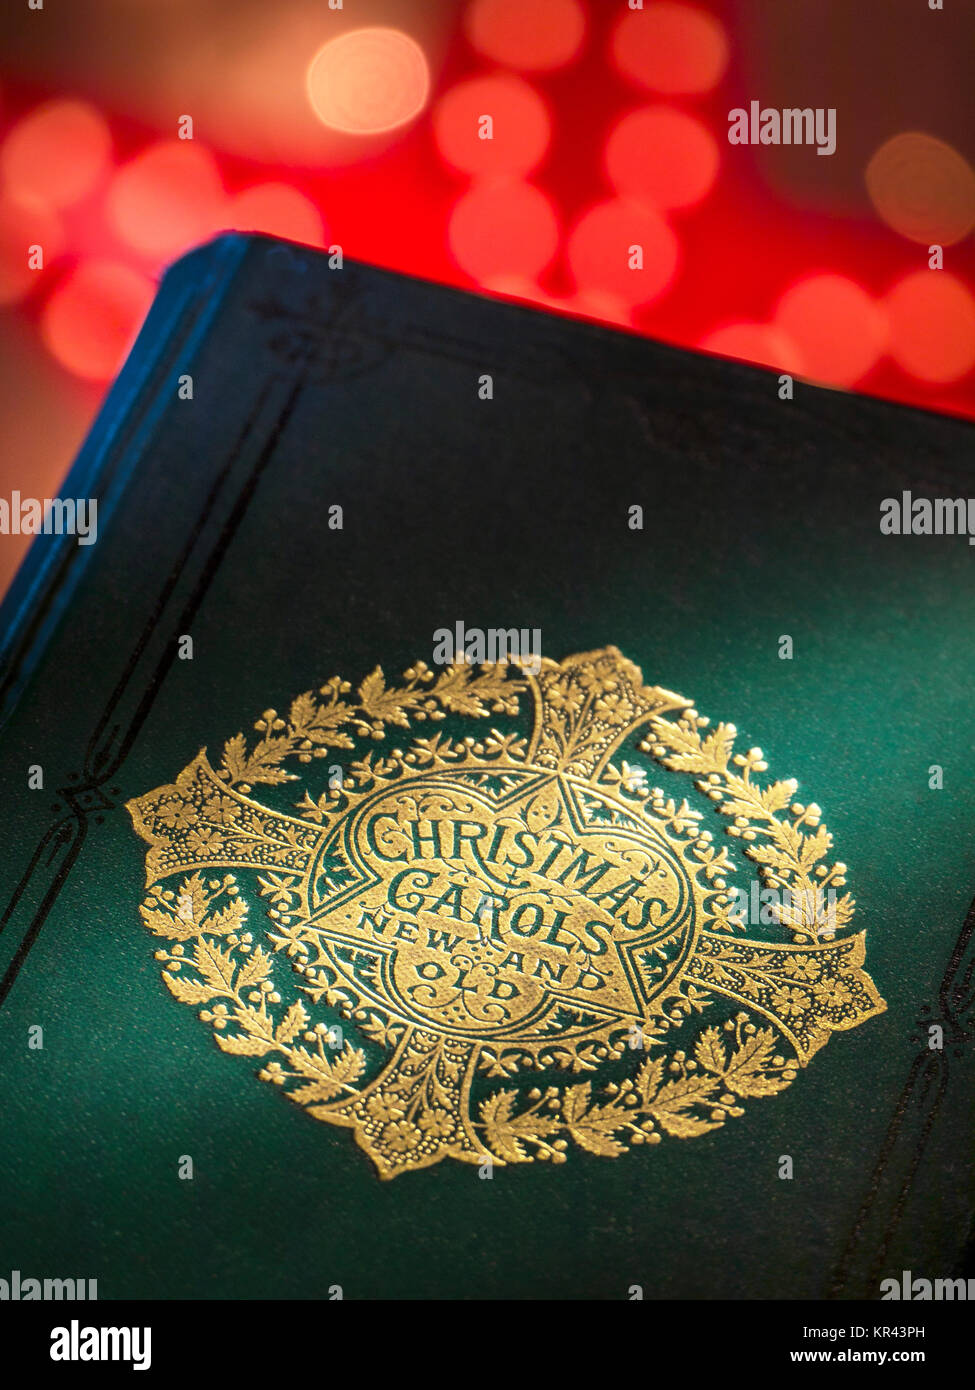 'Christmas Carols Old and New'  music book cover with warm inviting festive Christmas lights behind - Stock Image